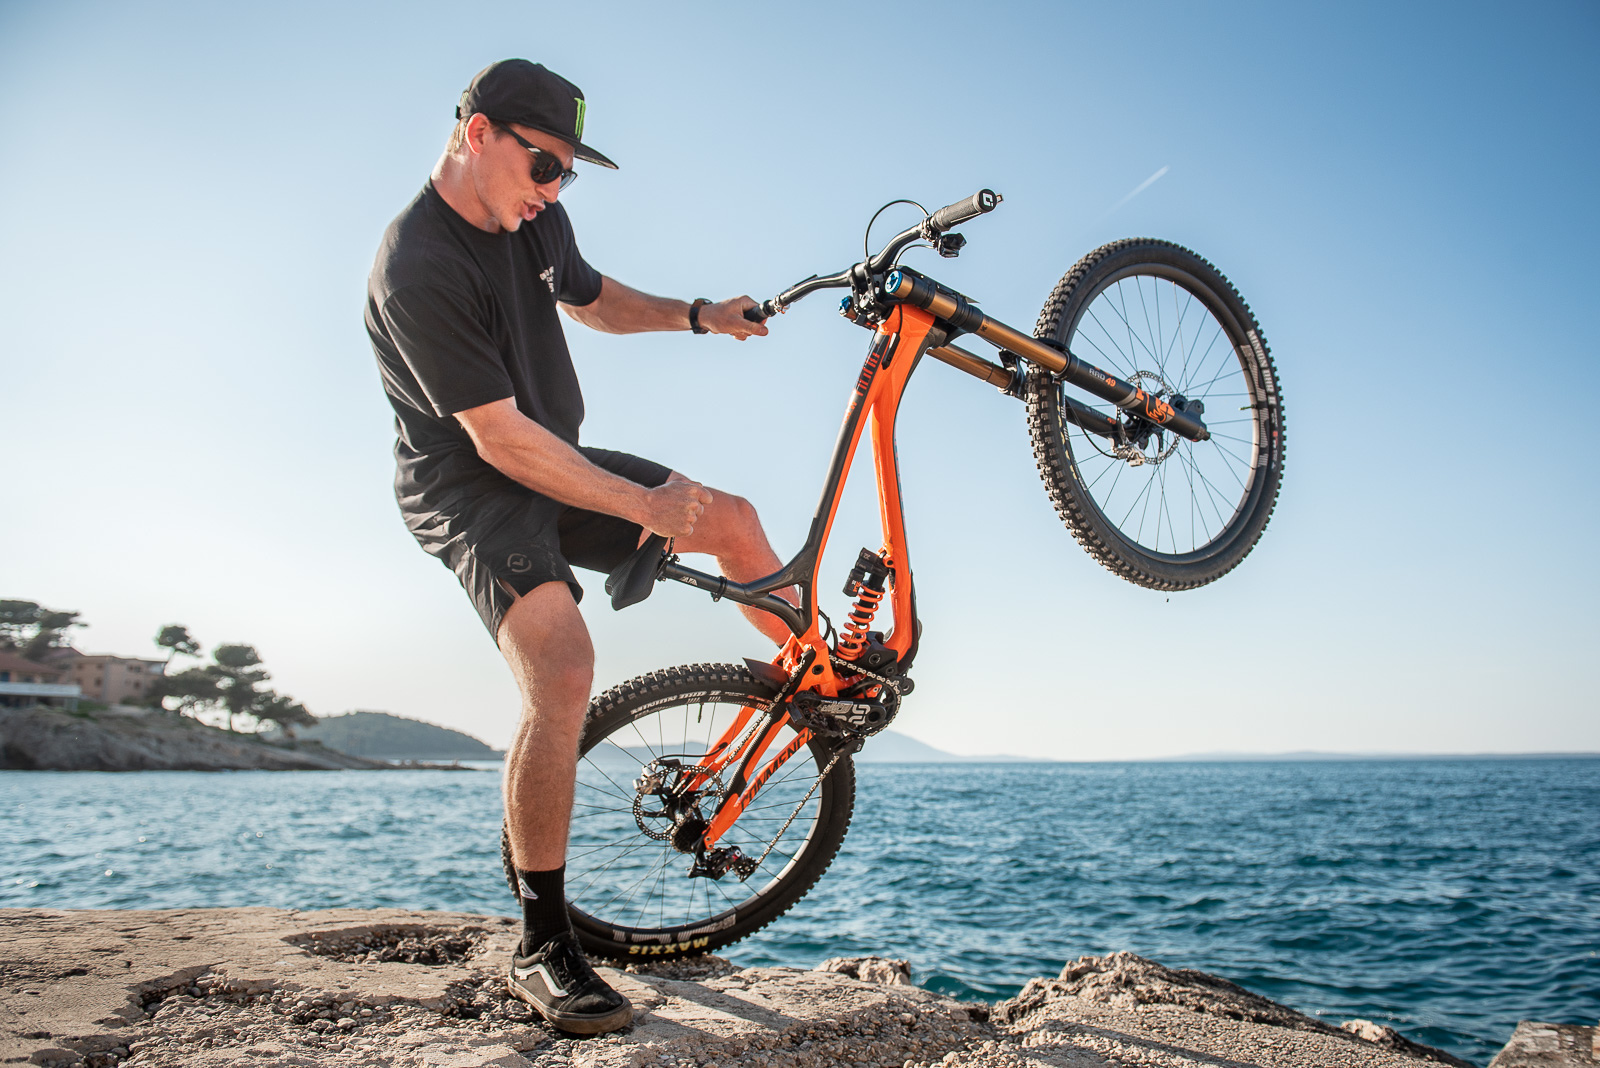 American Bruce Klein ready to rock out to some jagged rocks on his shiny new Commencal